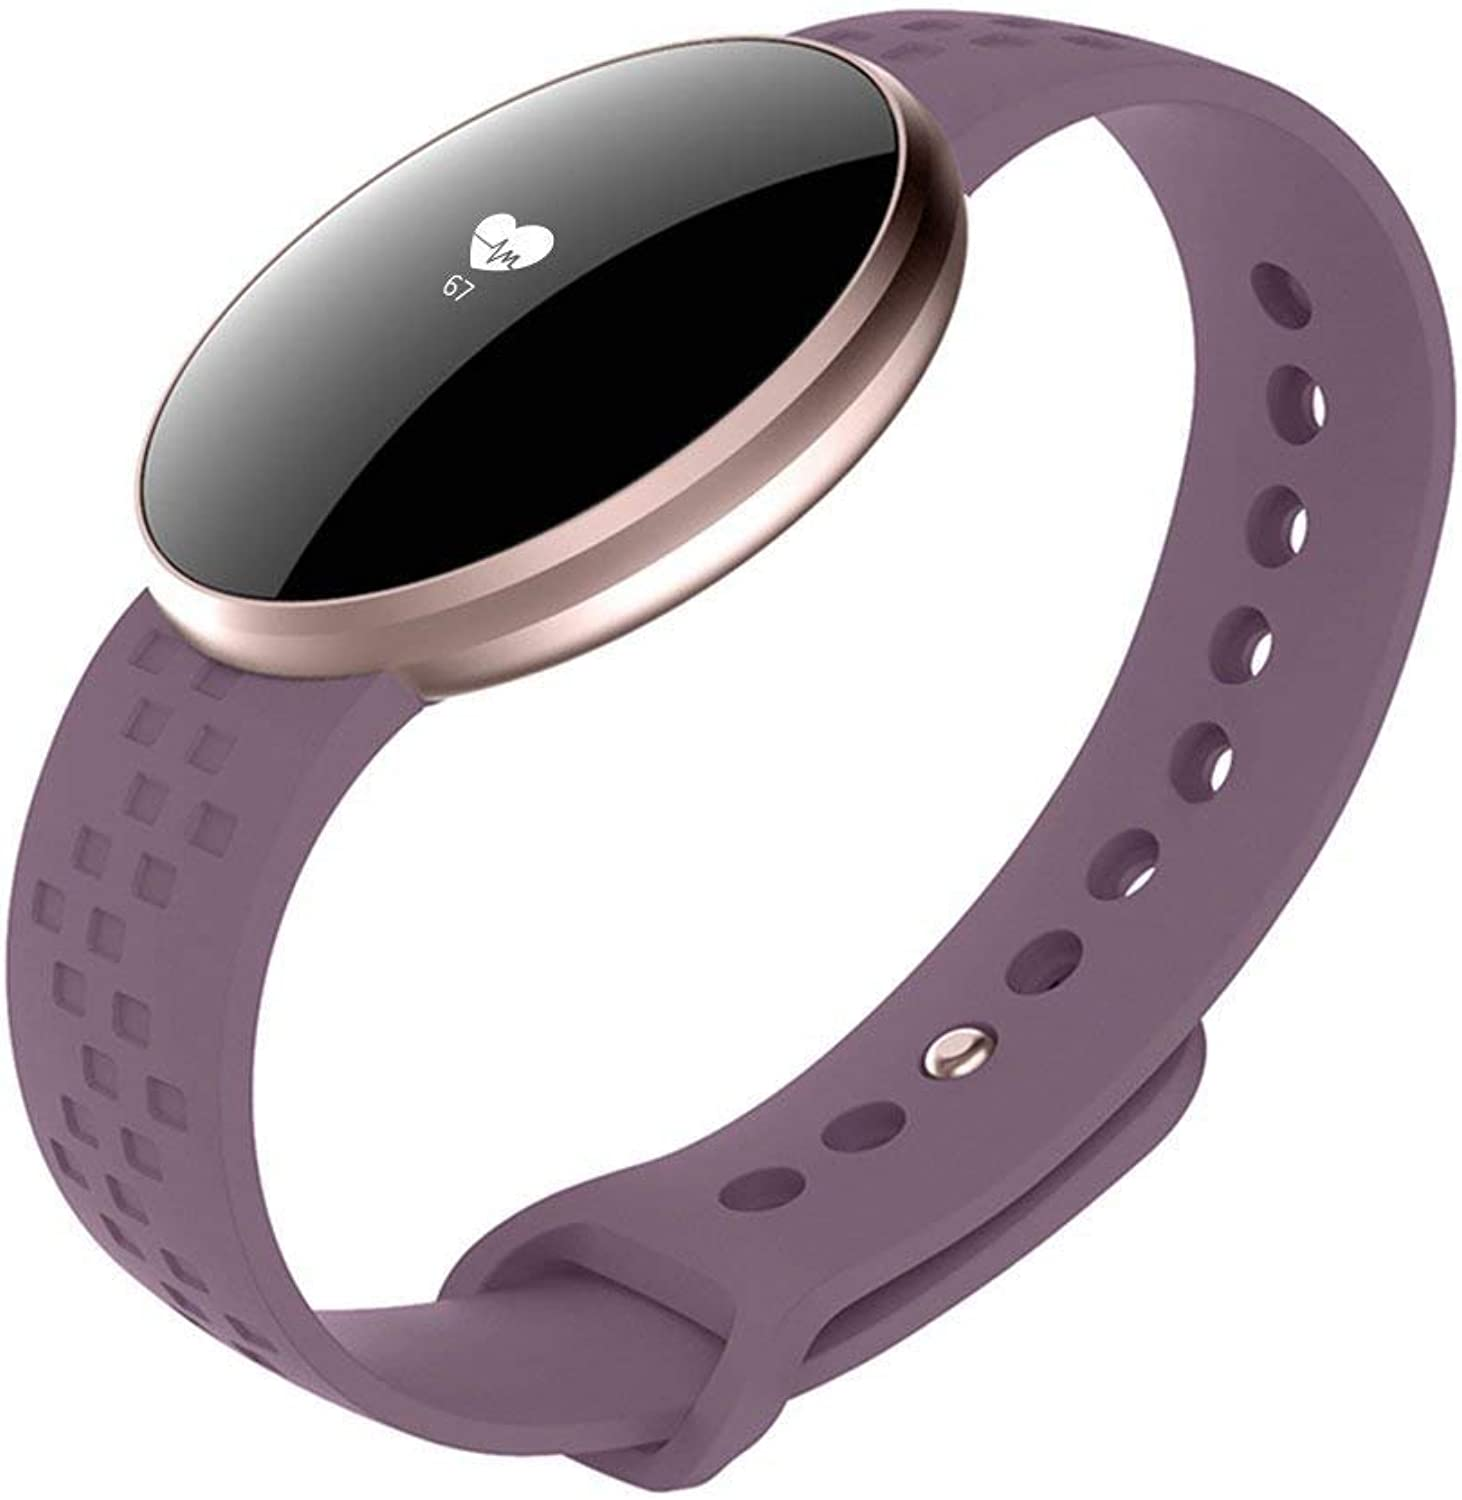 XHZNDZ Women's Smart Watch for iPhone Android Phone with Fitness Sleep Monitoring Waterproof Remote Camera GPS Auto Wake Screen (color   Purple)